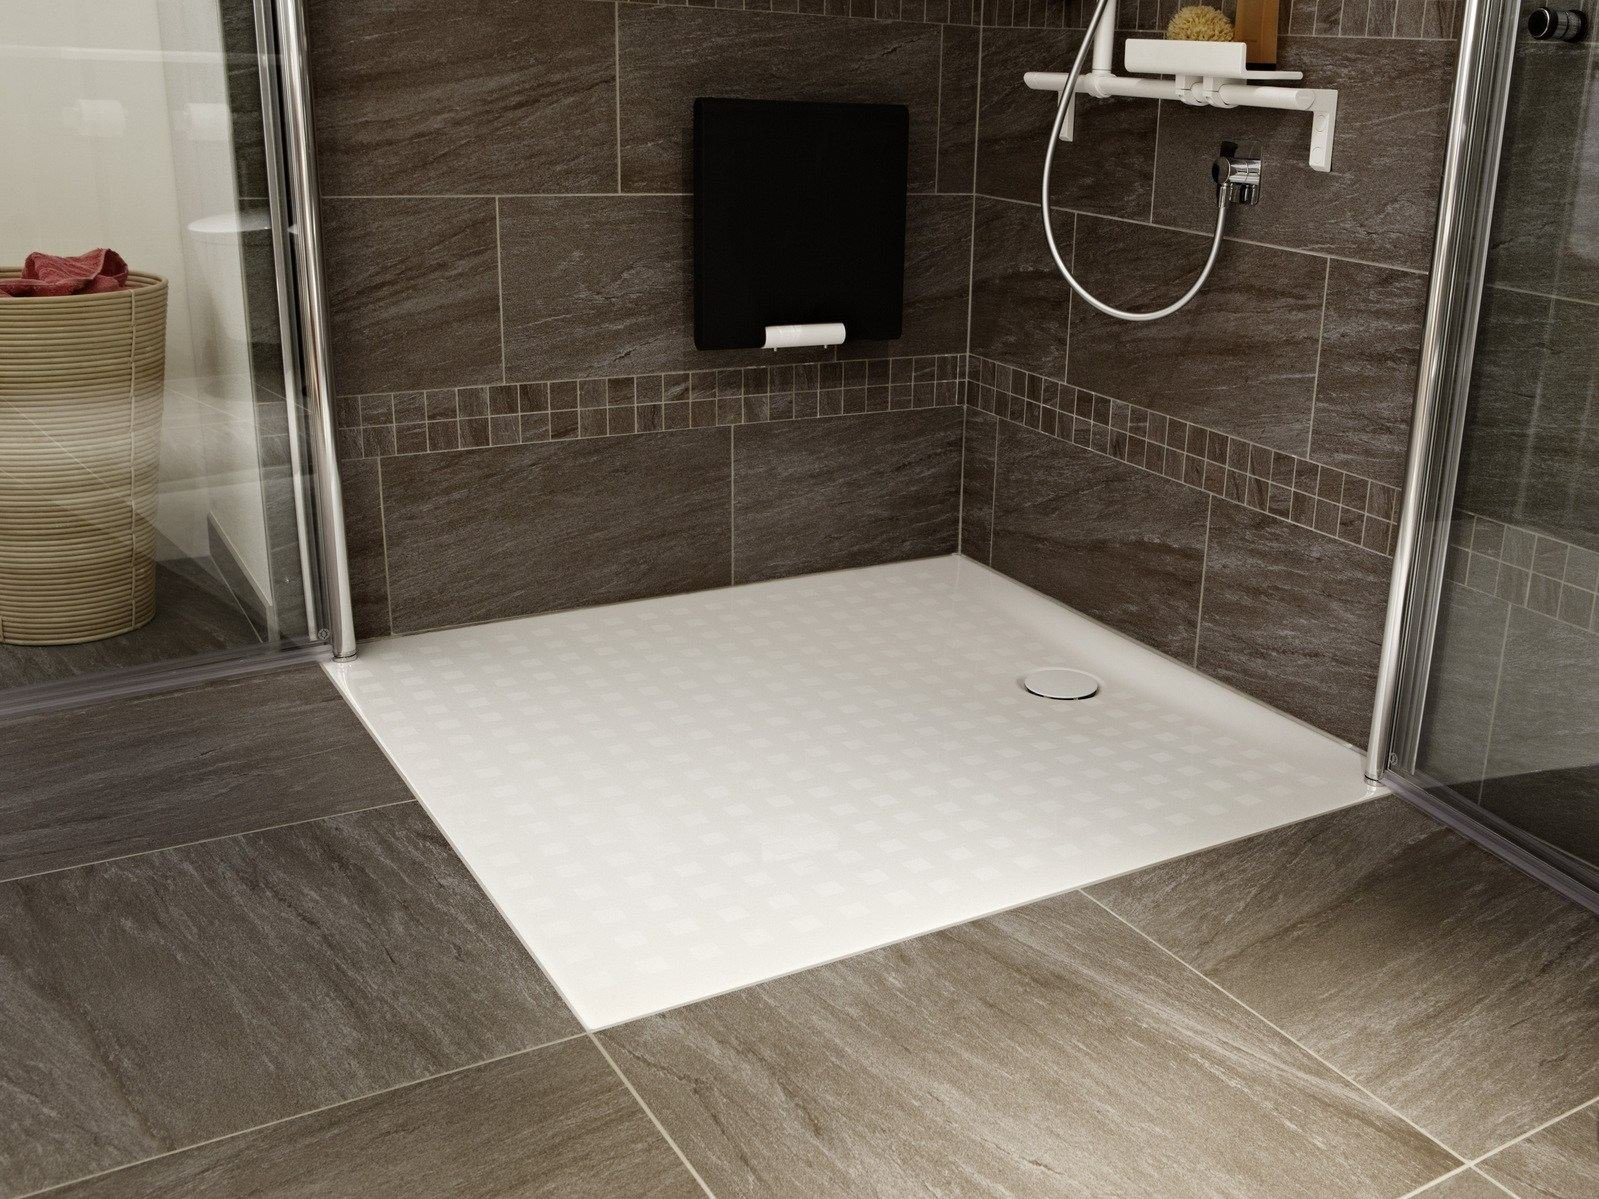 bettefloor side rectangular shower tray by bette design tesseraux partner. Black Bedroom Furniture Sets. Home Design Ideas